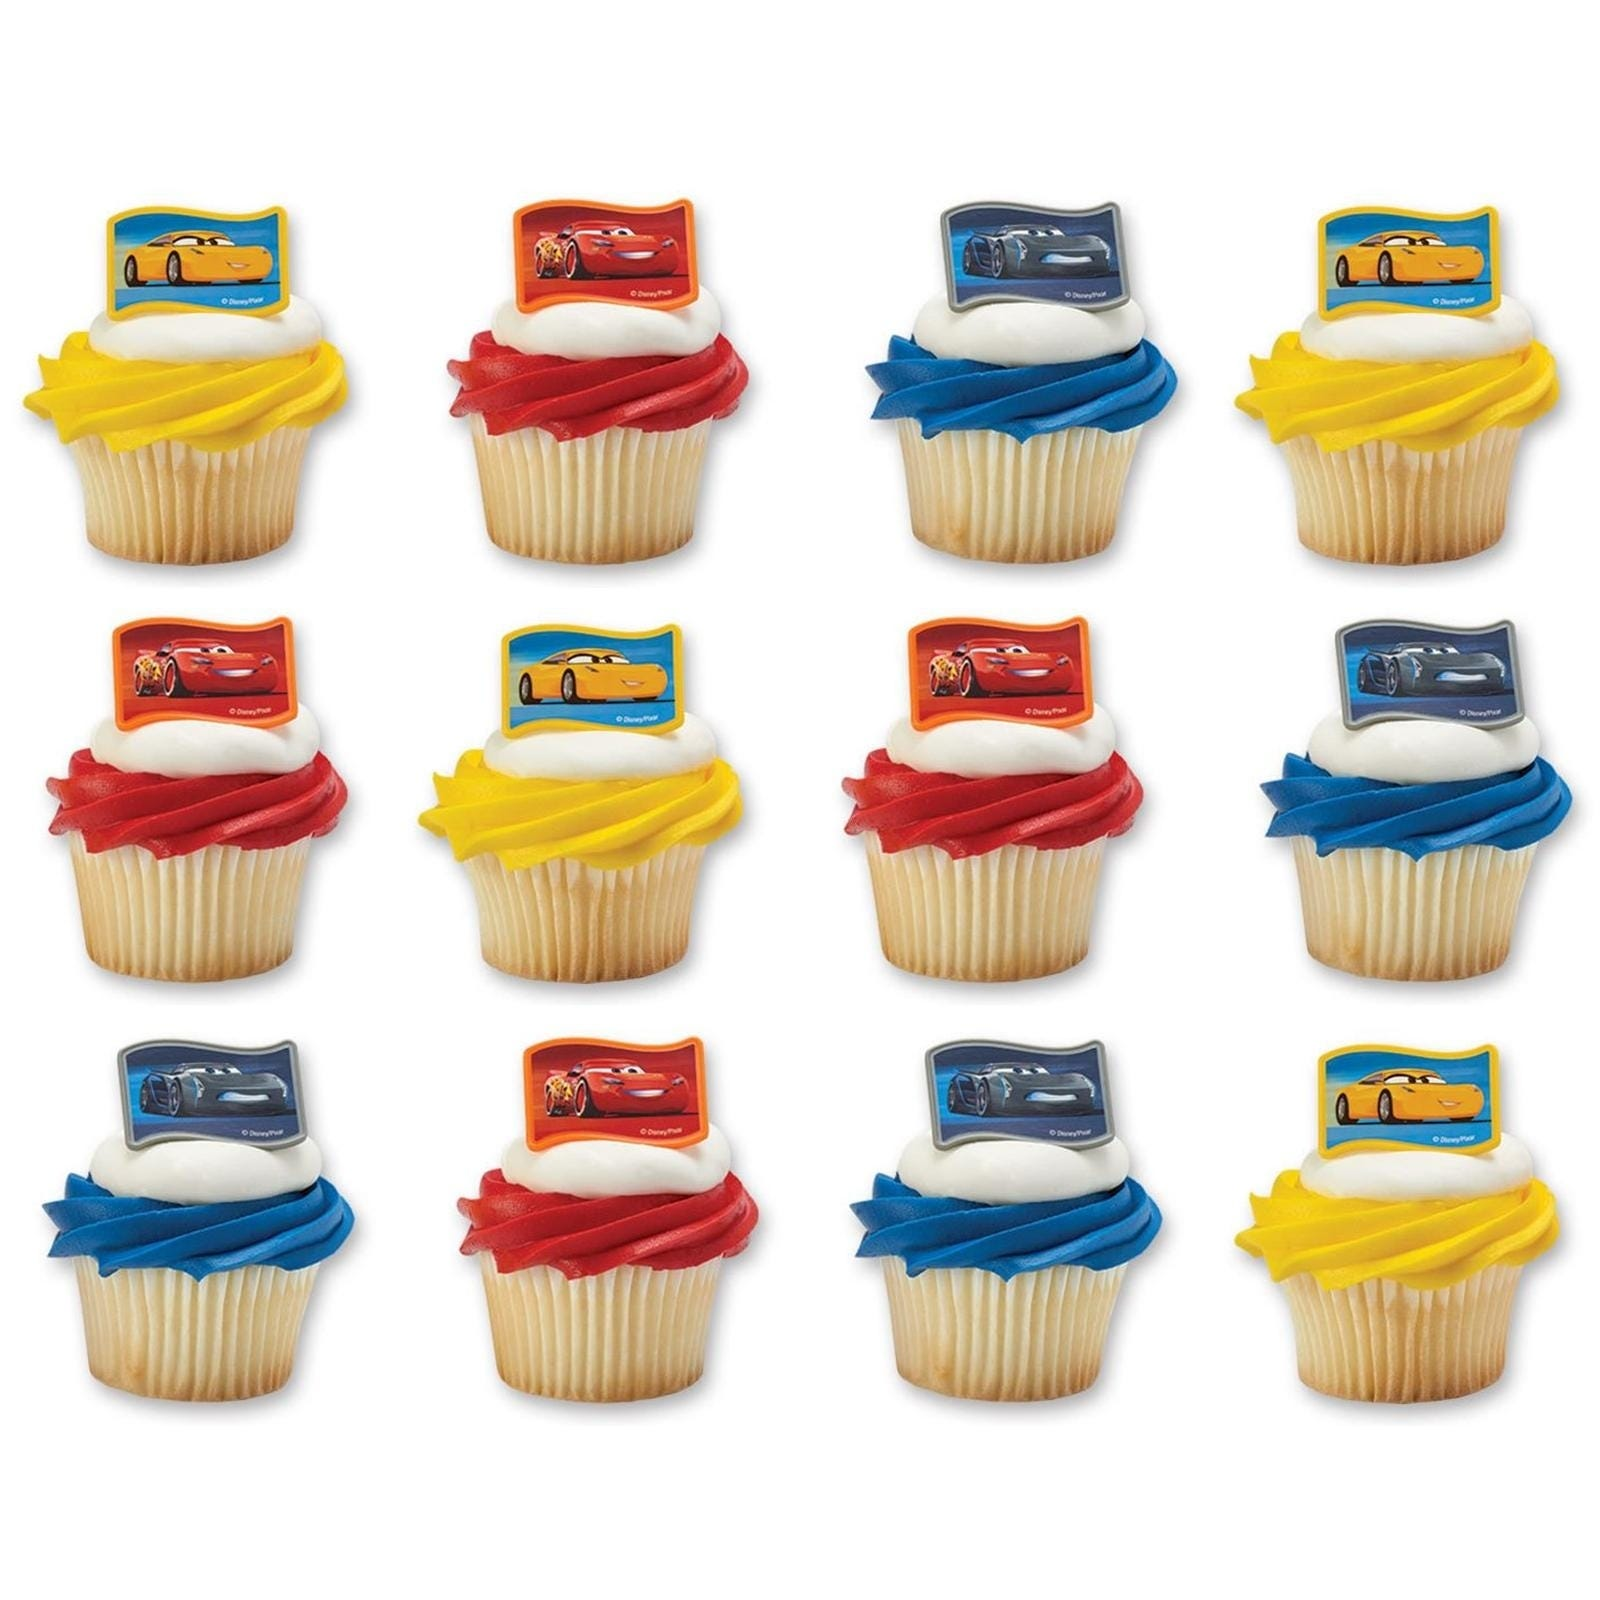 Muffin Wraps Mixed Colours 12 Pack Cake Decorating Baking Party